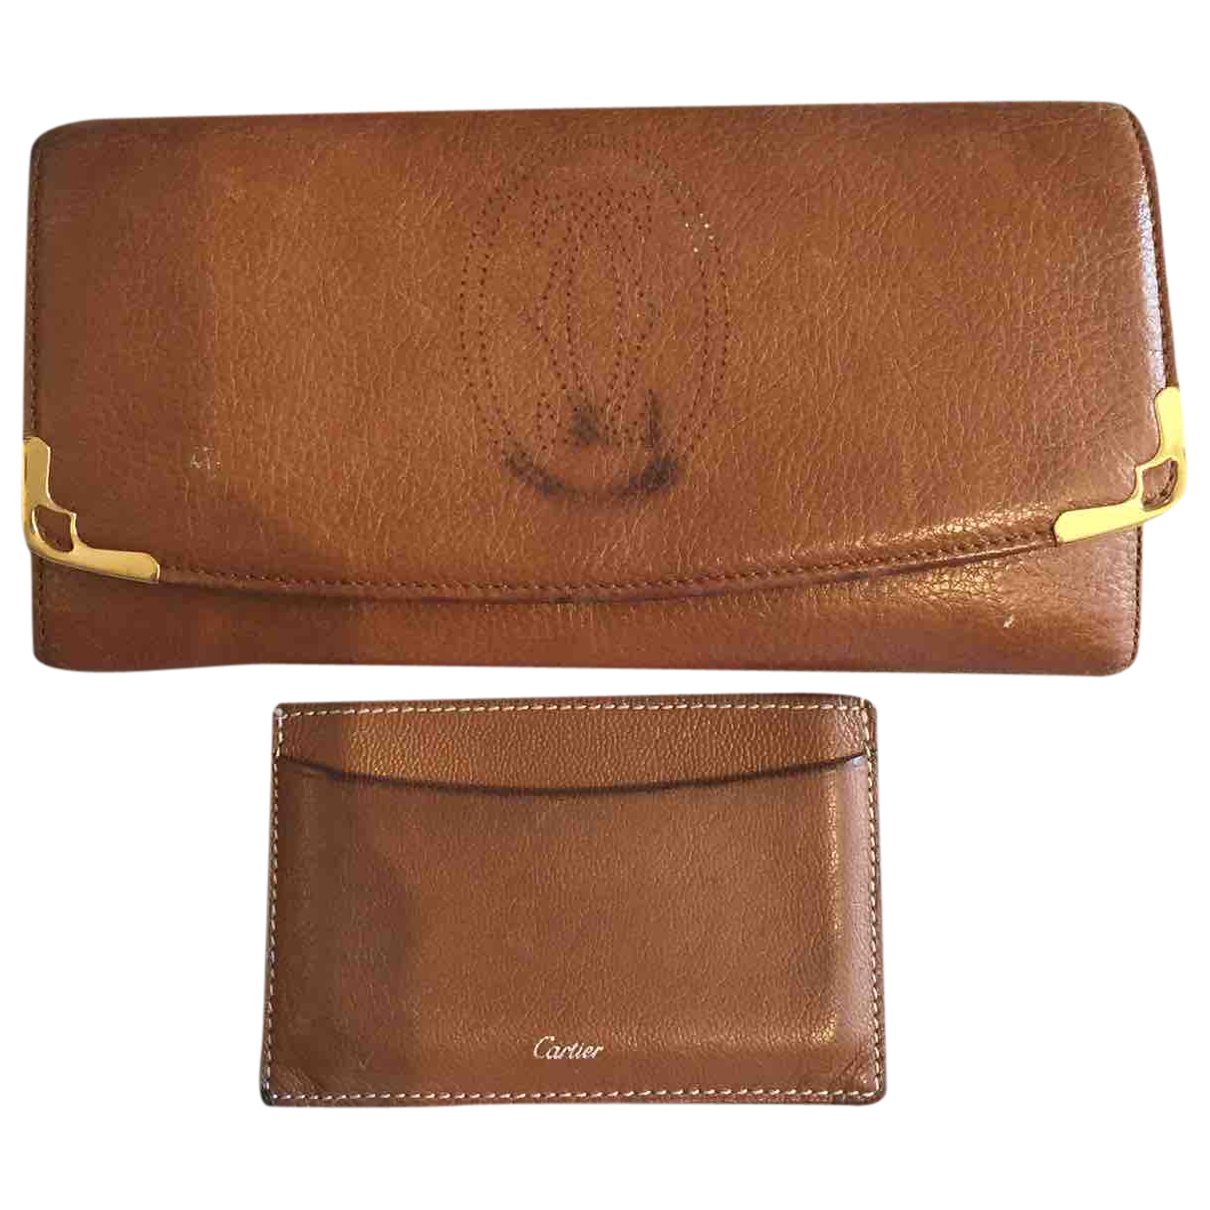 Cartier \N Brown Leather wallet for Women \N